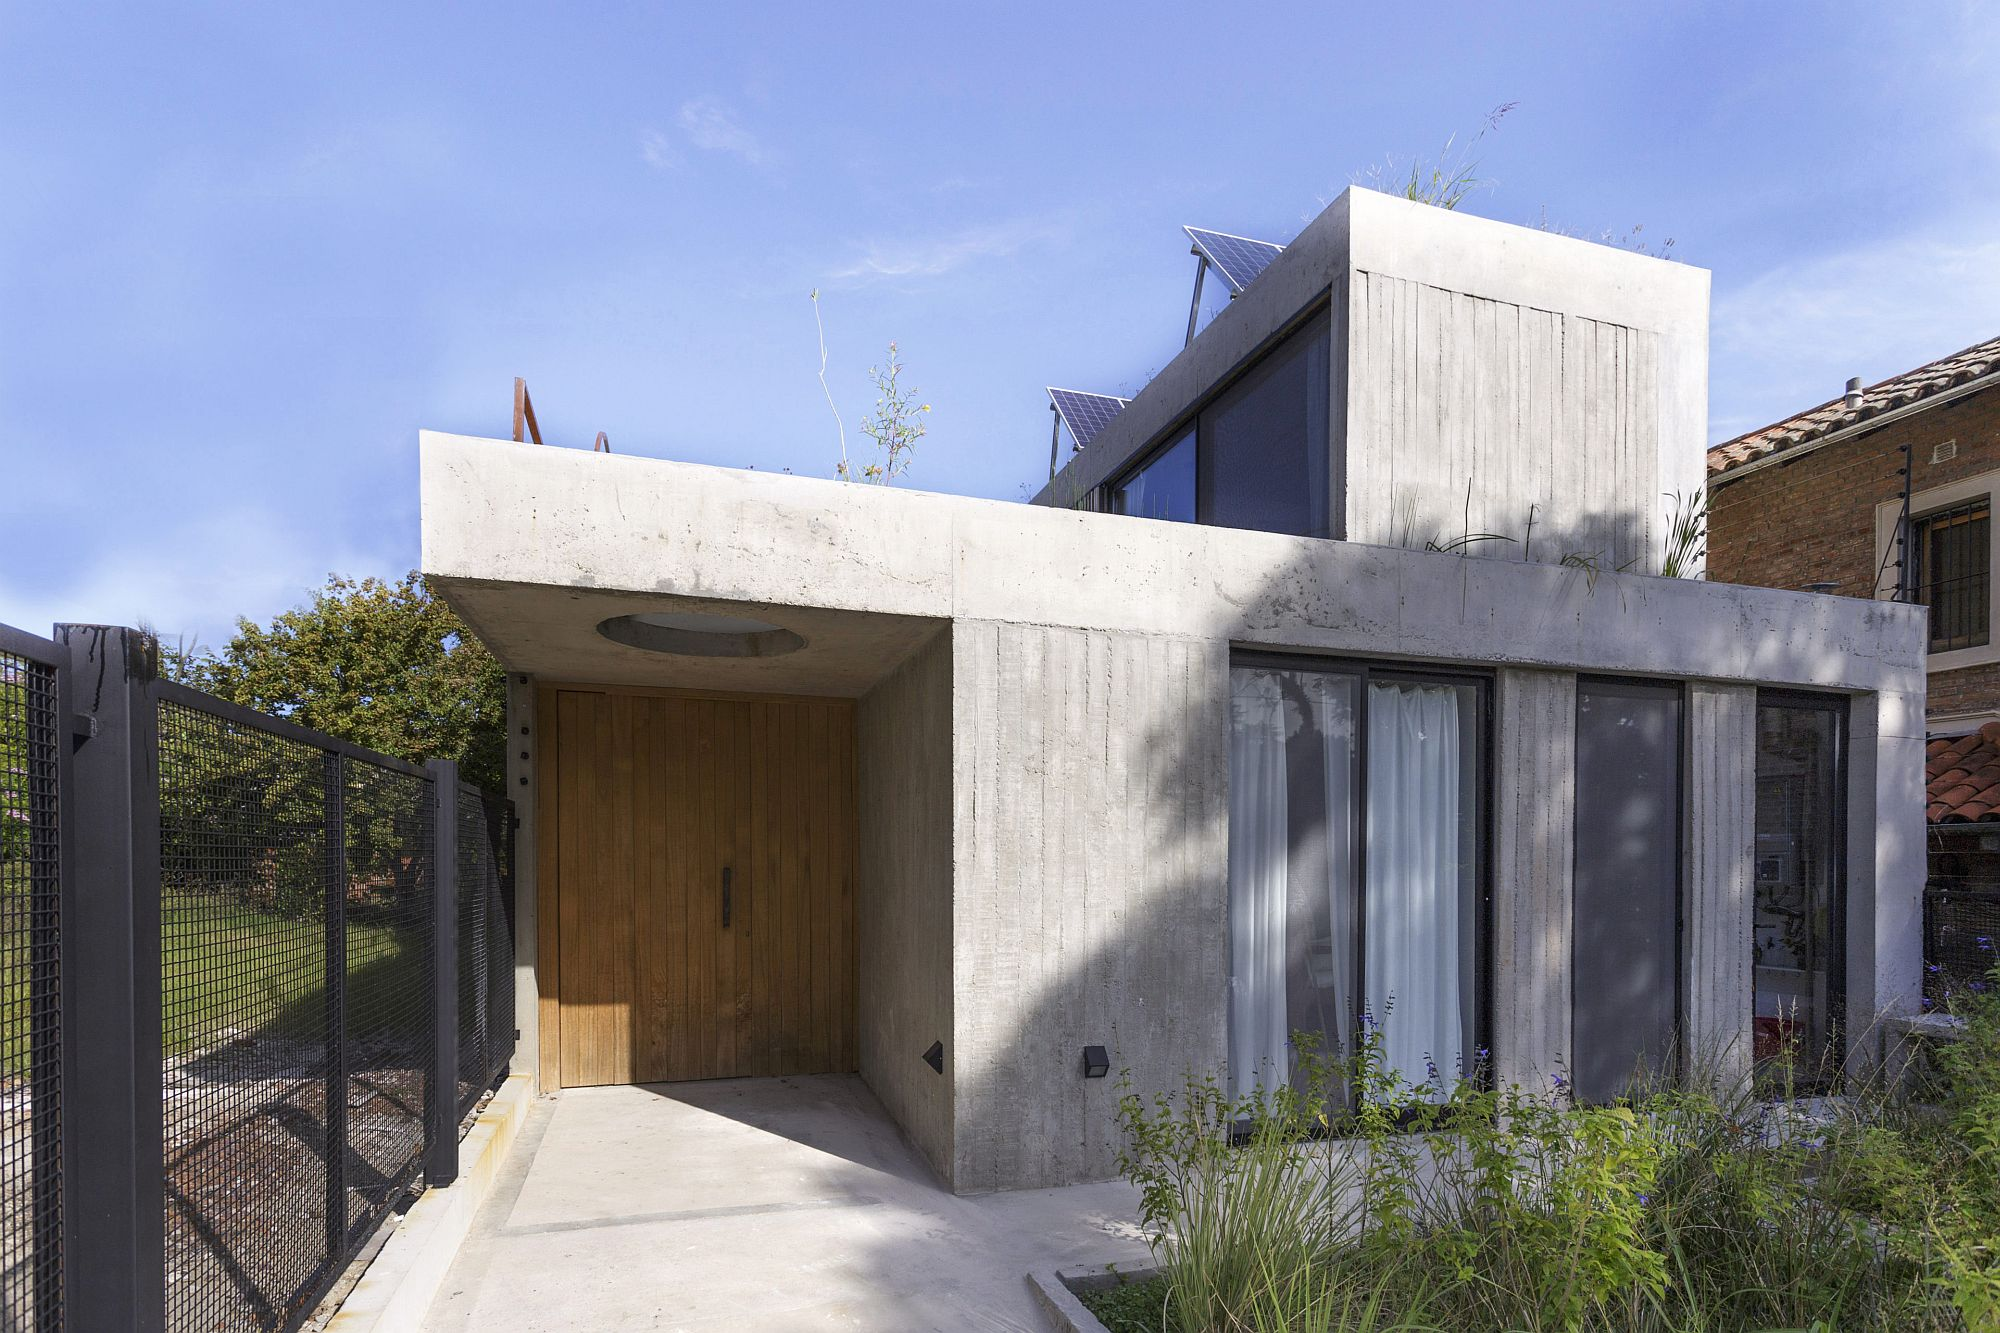 Unassuming and modern street facade of the house in concrete